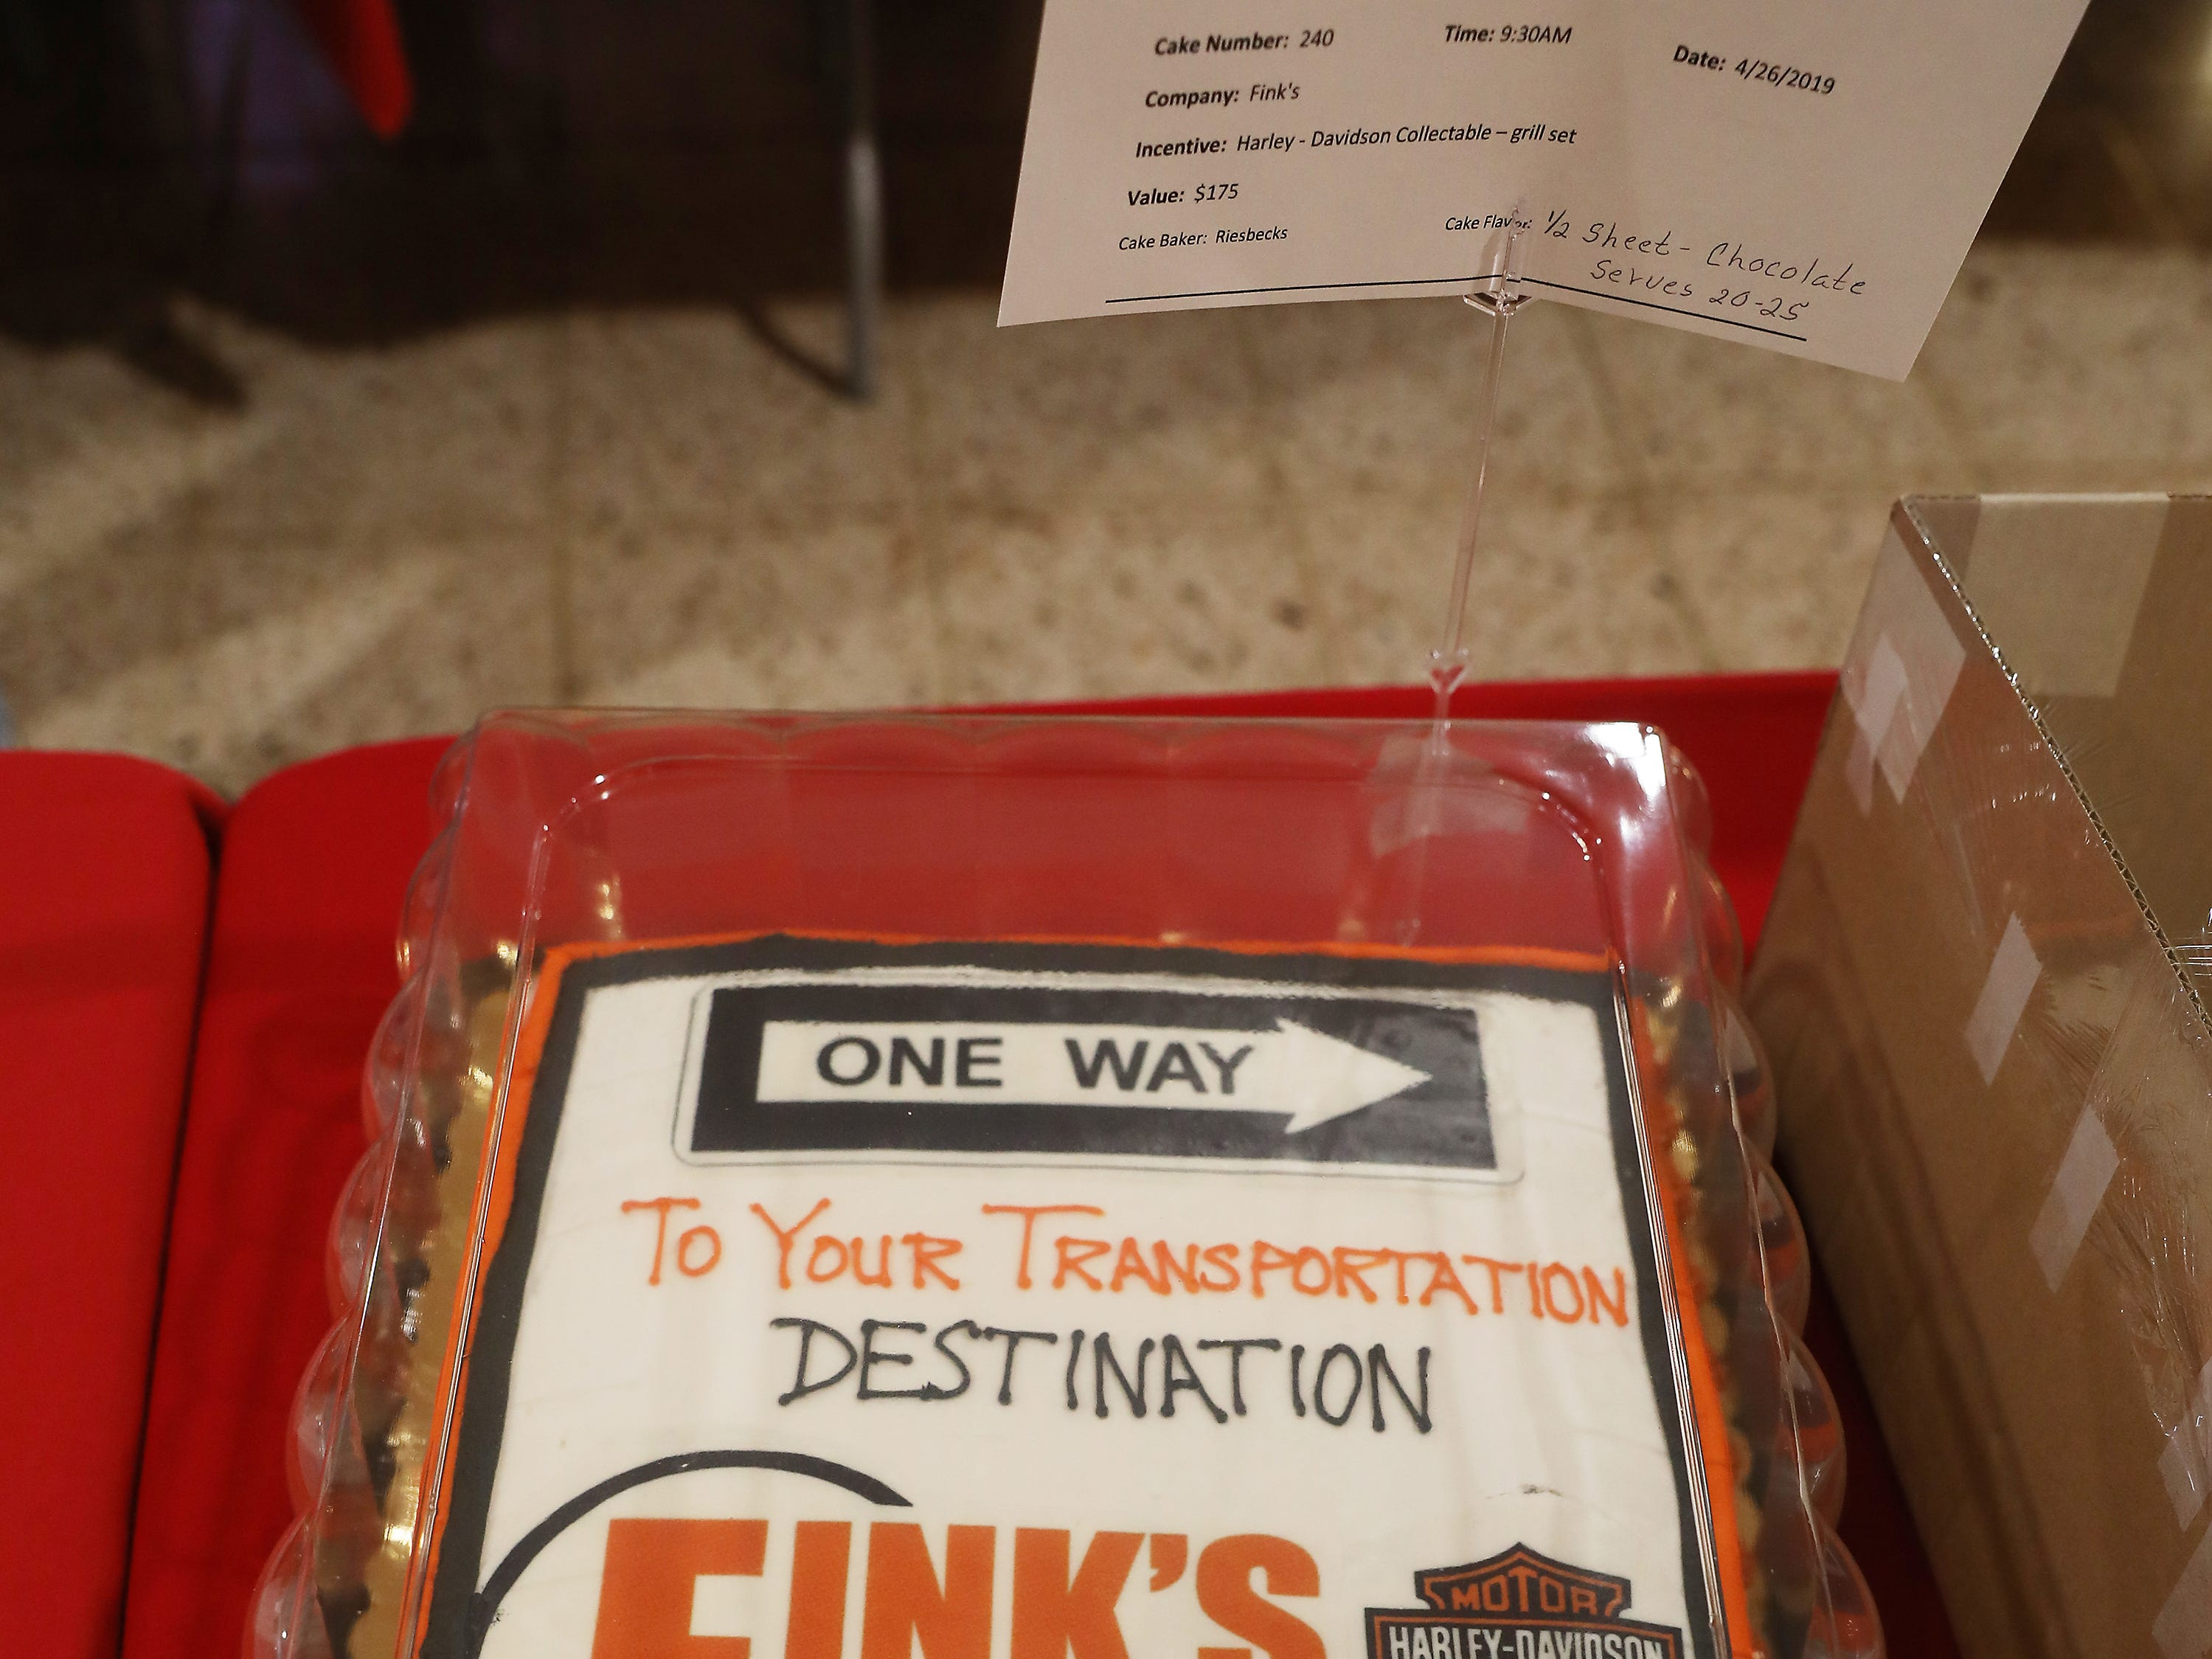 9:30 A.M. Friday cake 240 Fink's - Harley-Davidson collectable; $175